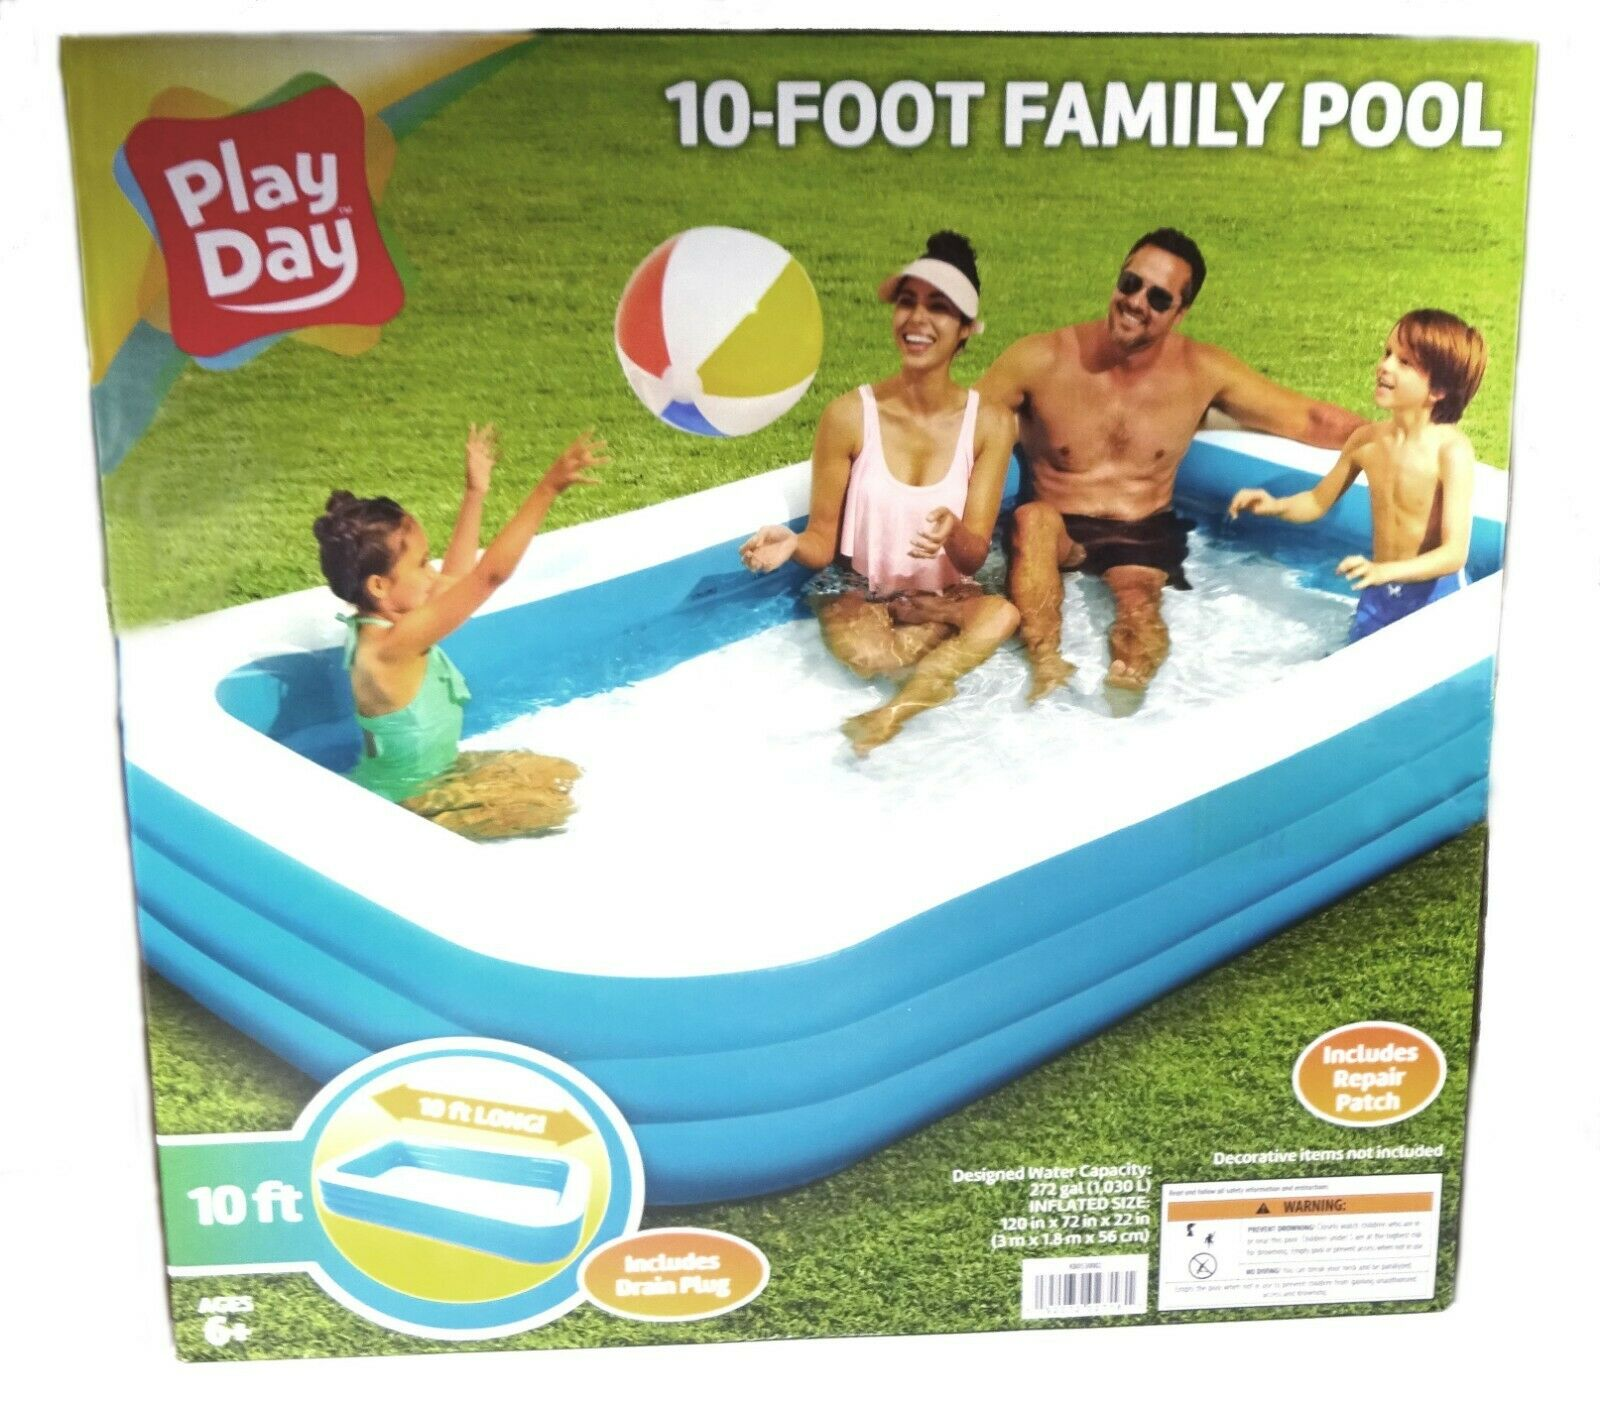 Play Day Inflatable Family Pool, 10 Foot